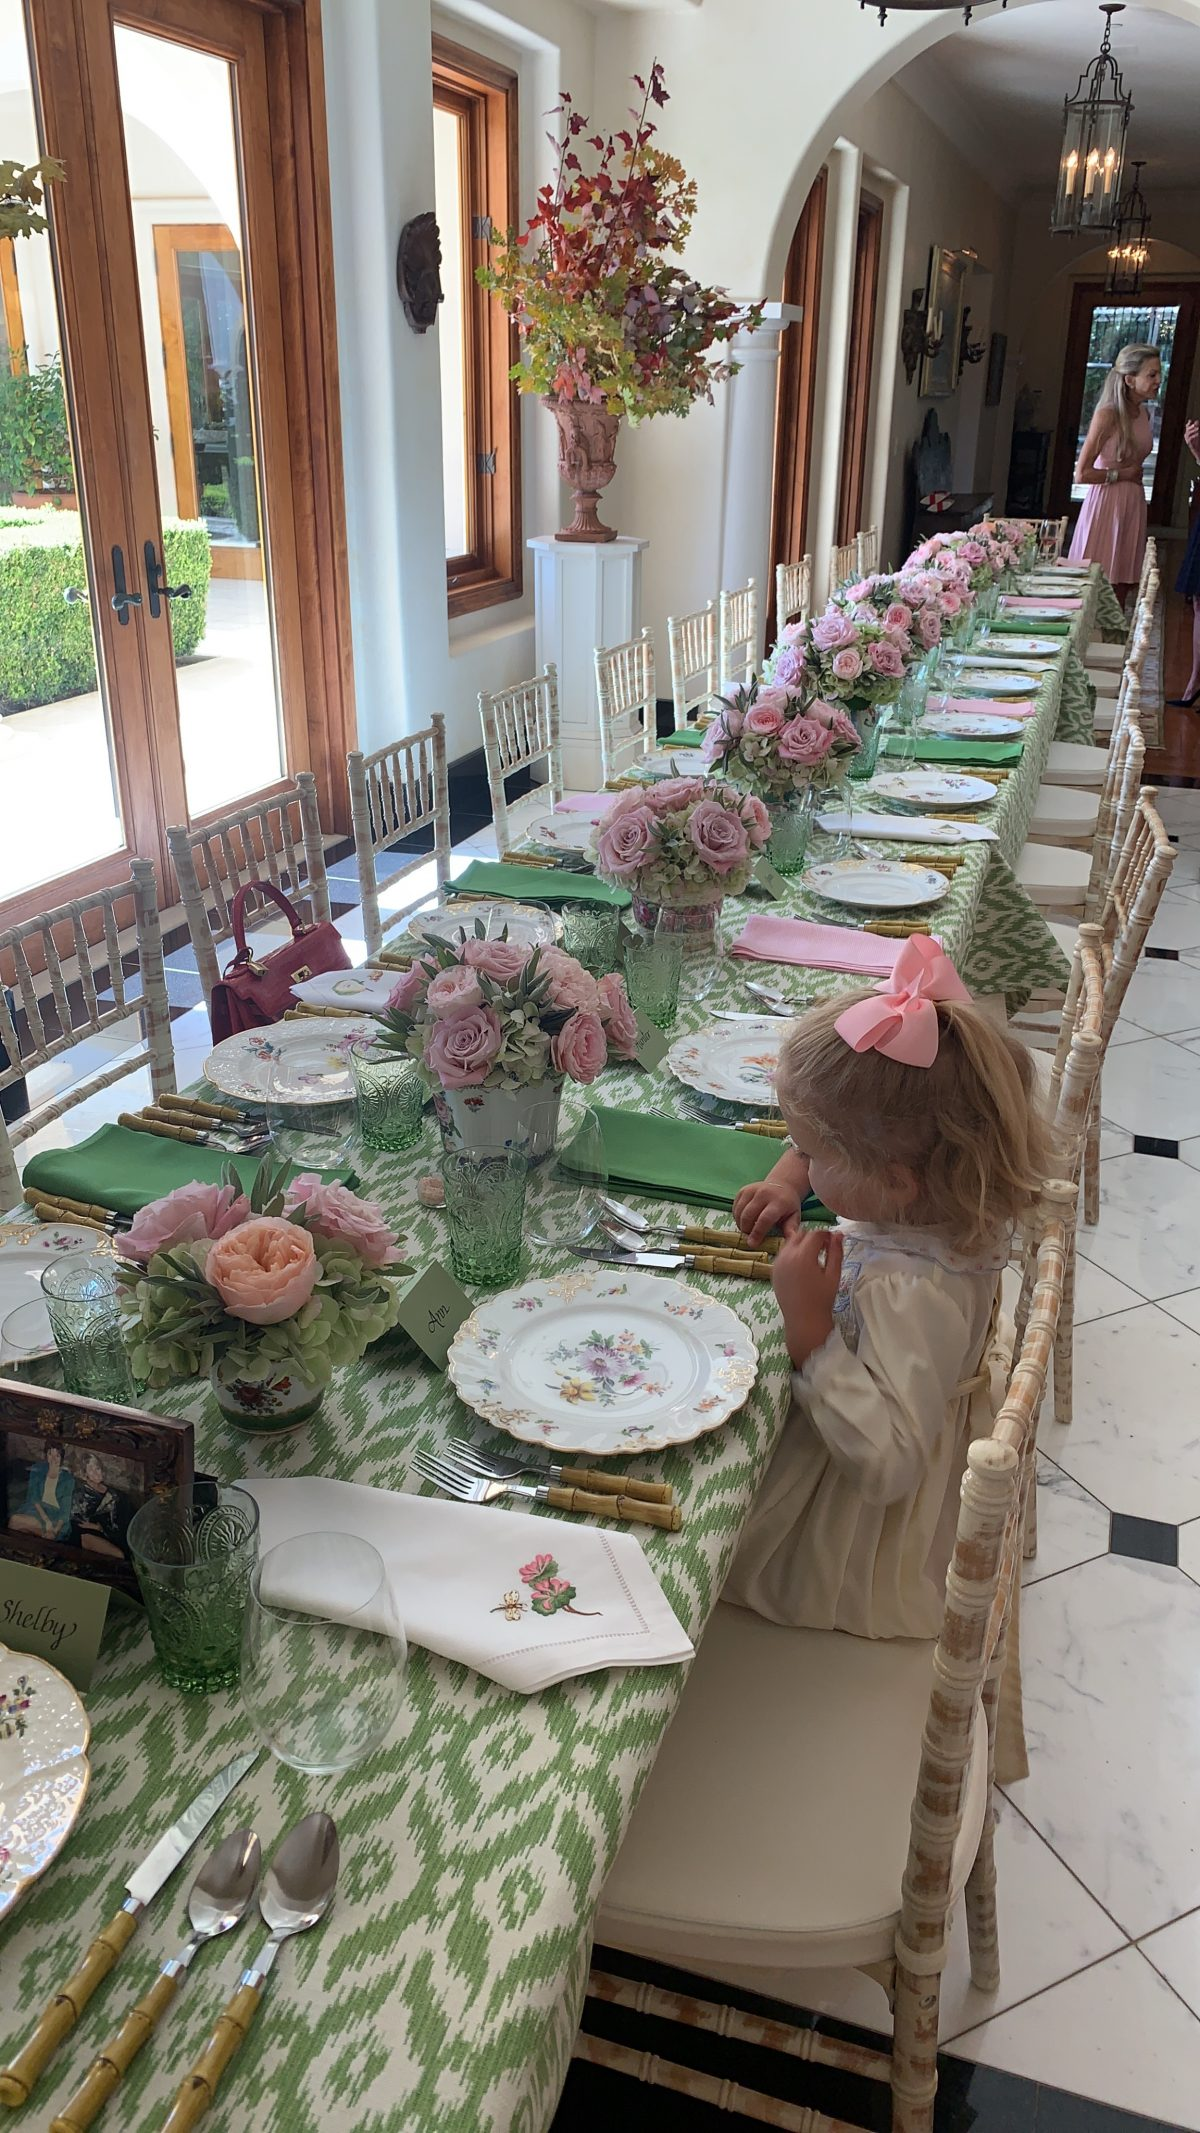 Madrid at a girls luncheon